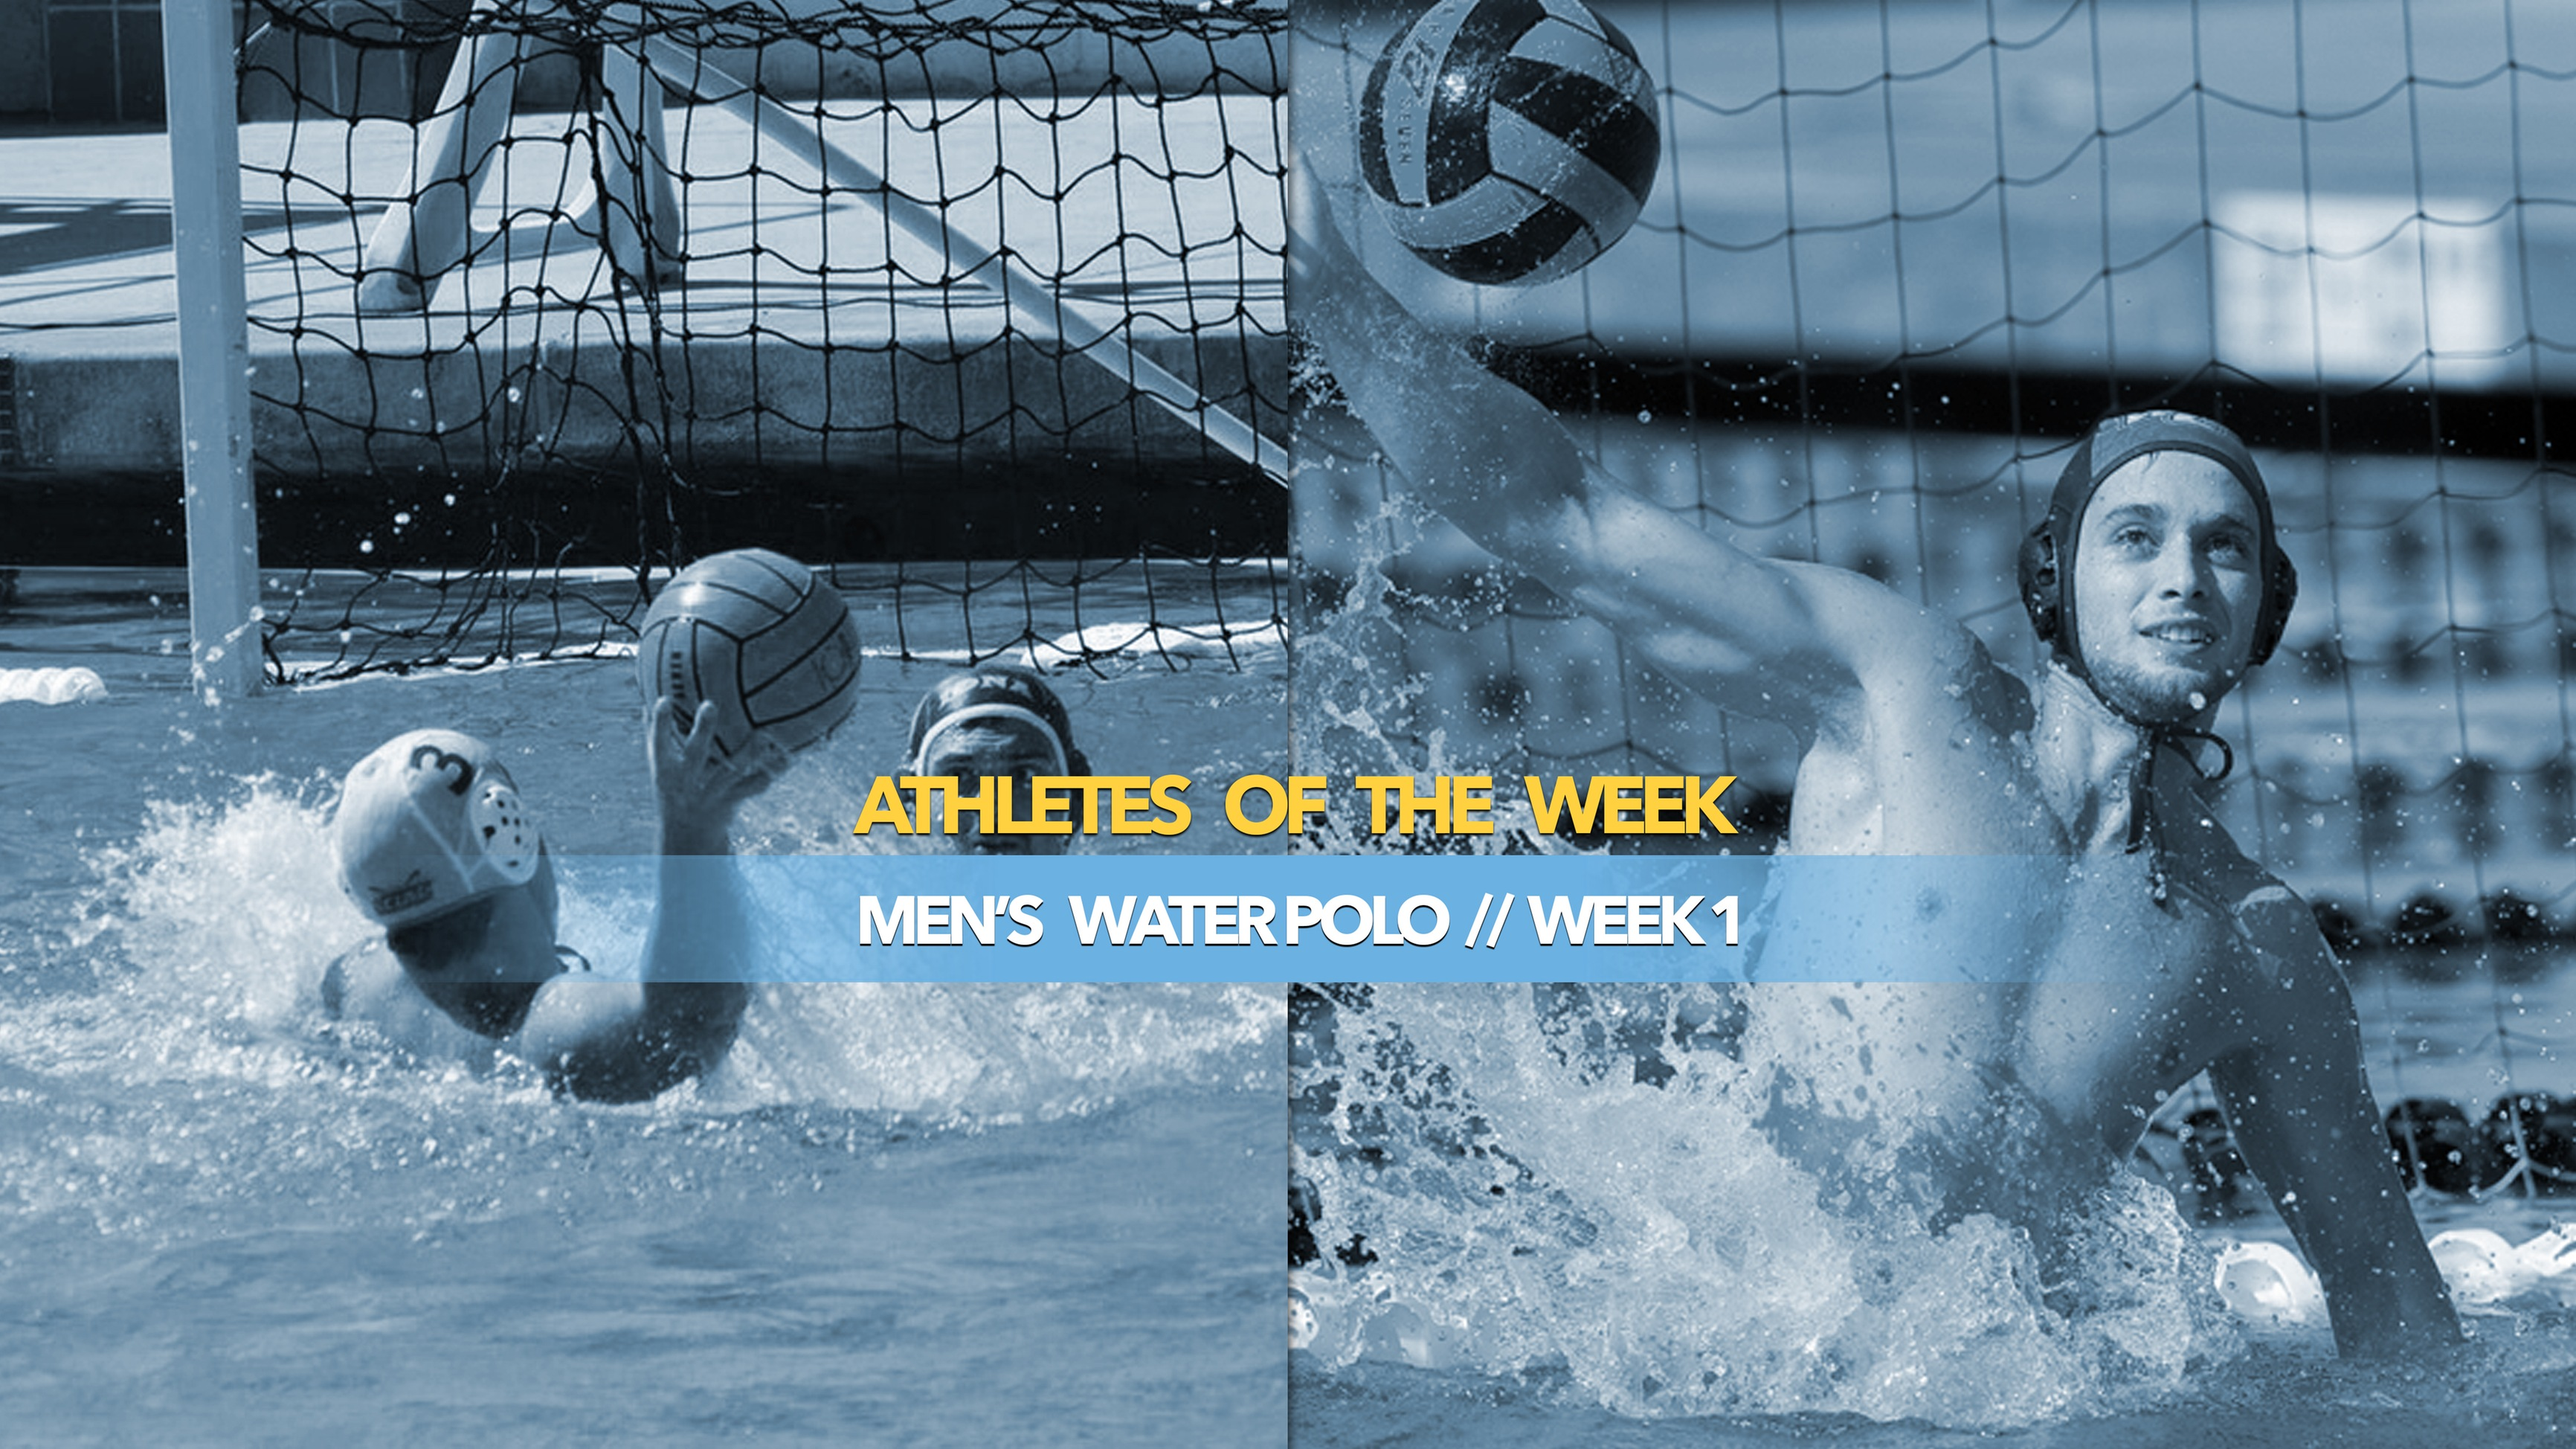 Men's Water Polo Athletes of the Week: September 9, 2019